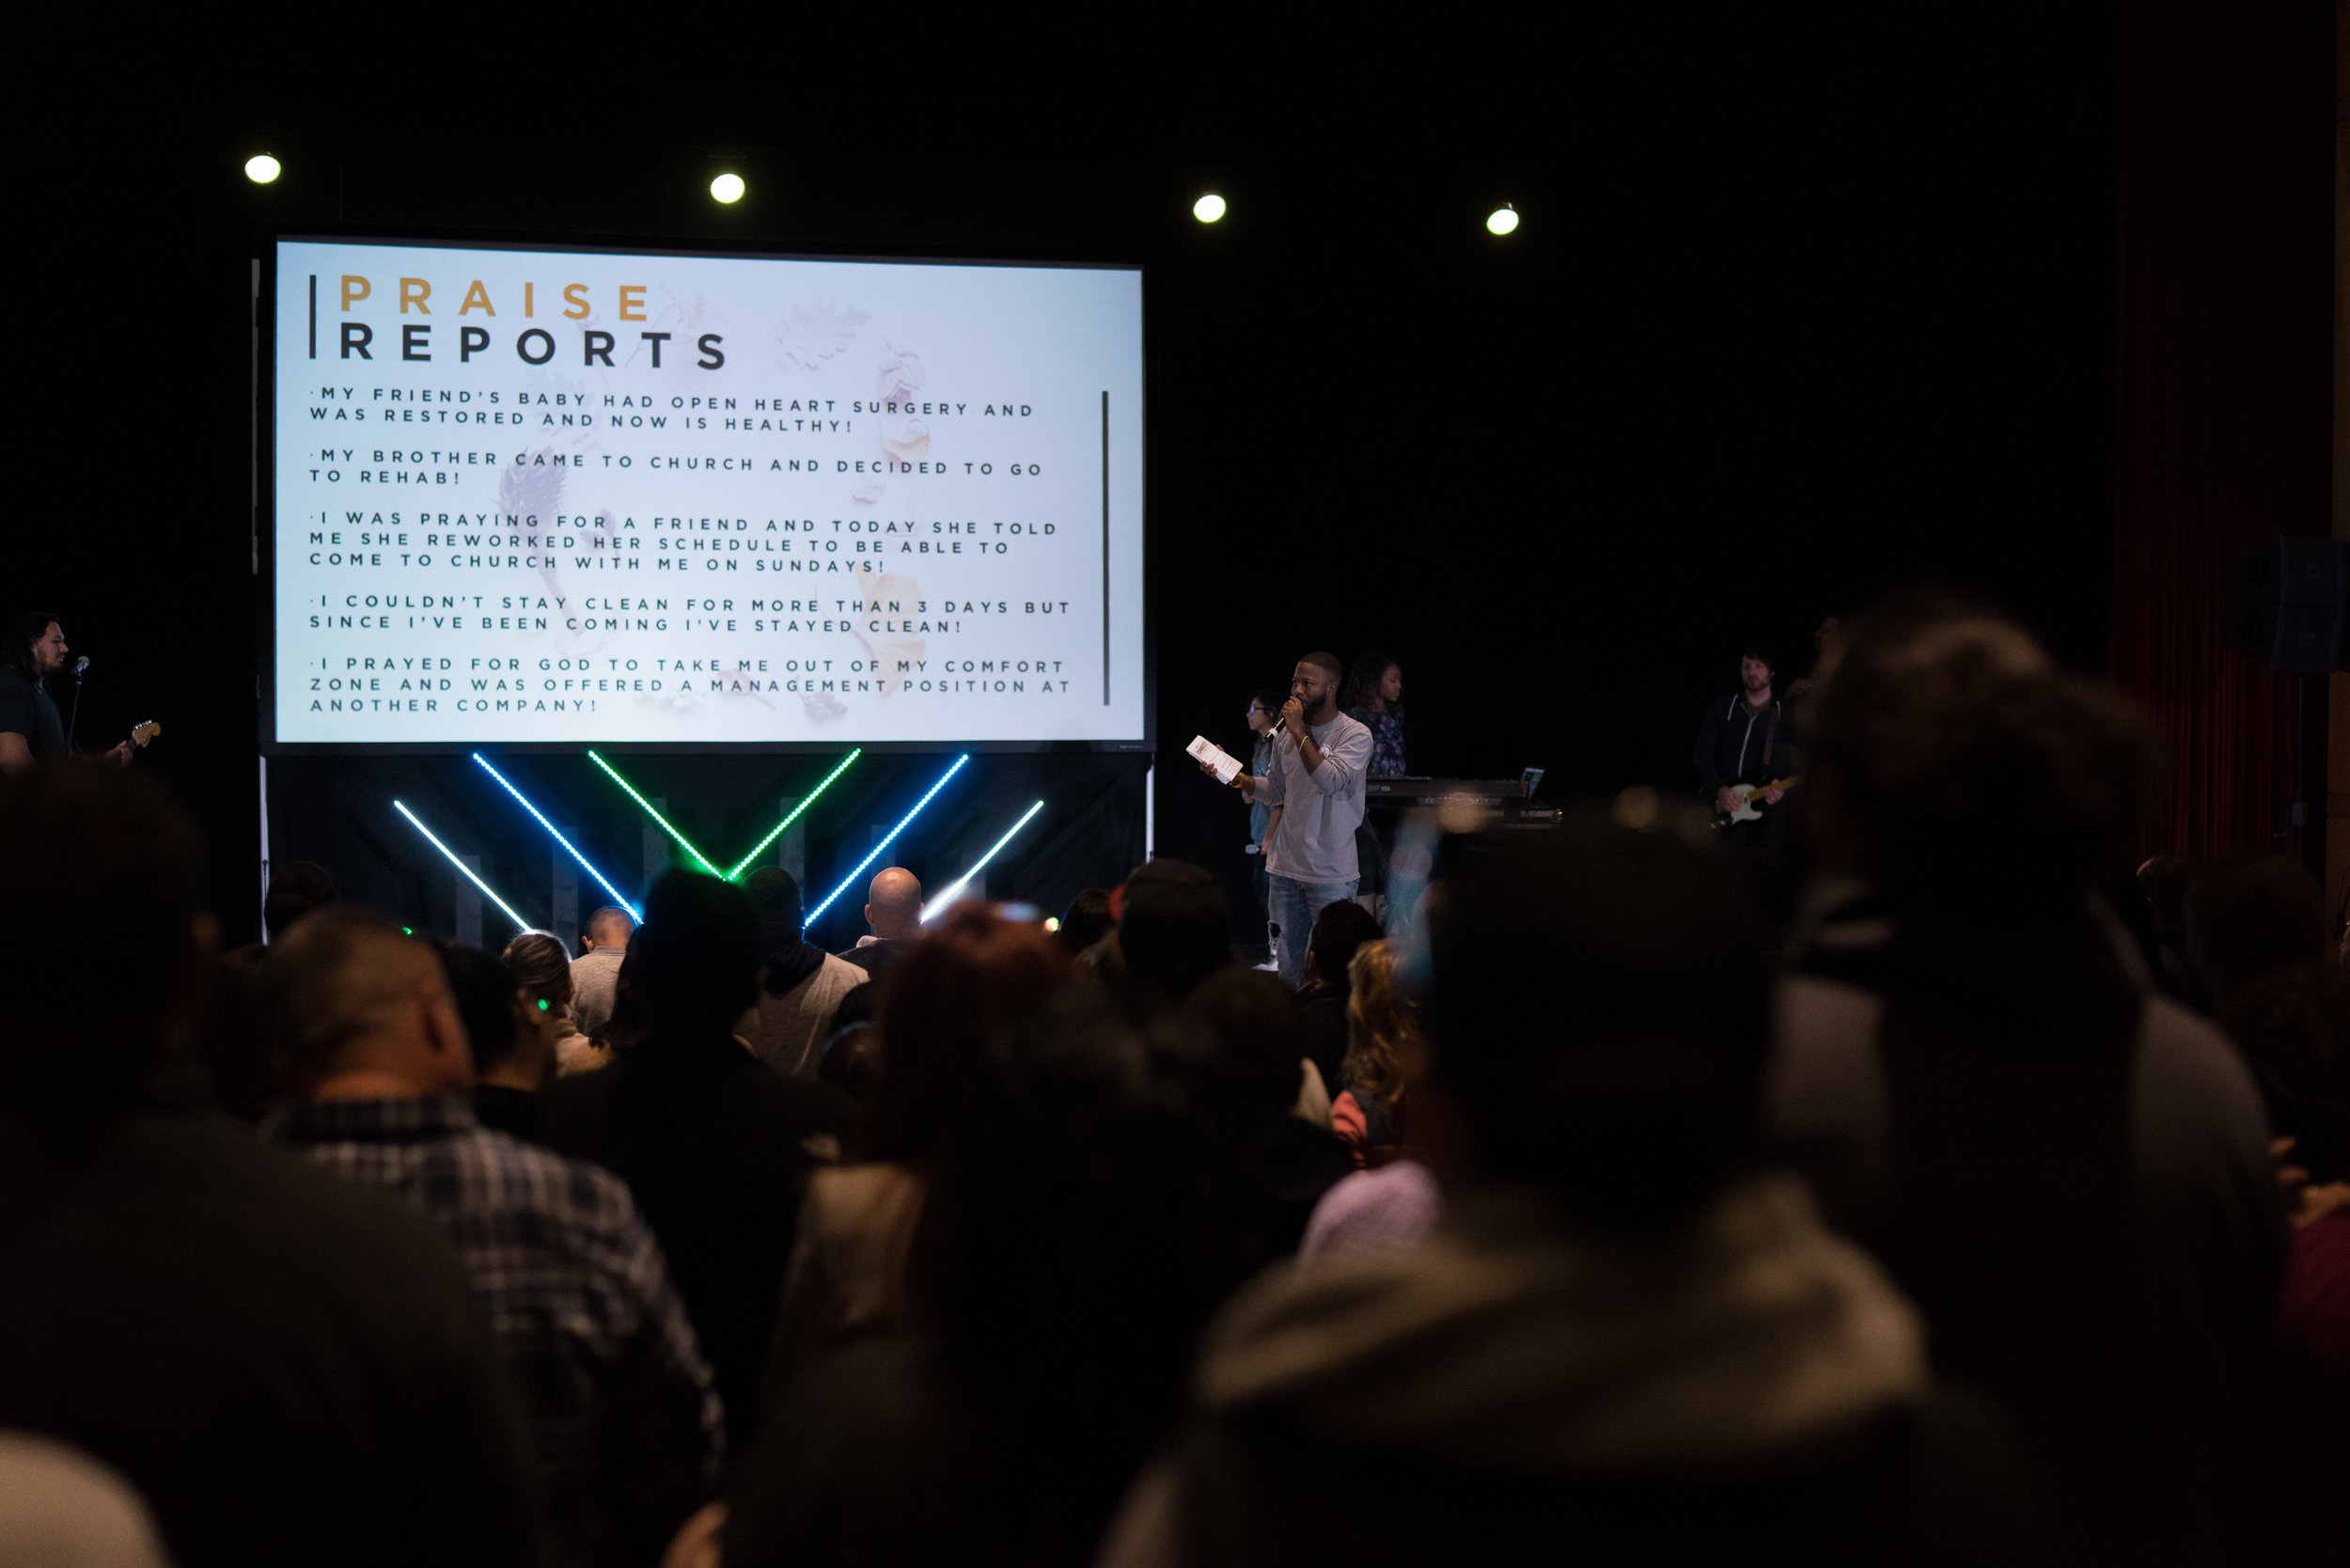 Praise Reports - If you have already received a victory, be sure to fill out a Praise Report so we can celebrate all that God is doing in your life. We LOVE to hear what God is up to in our community!